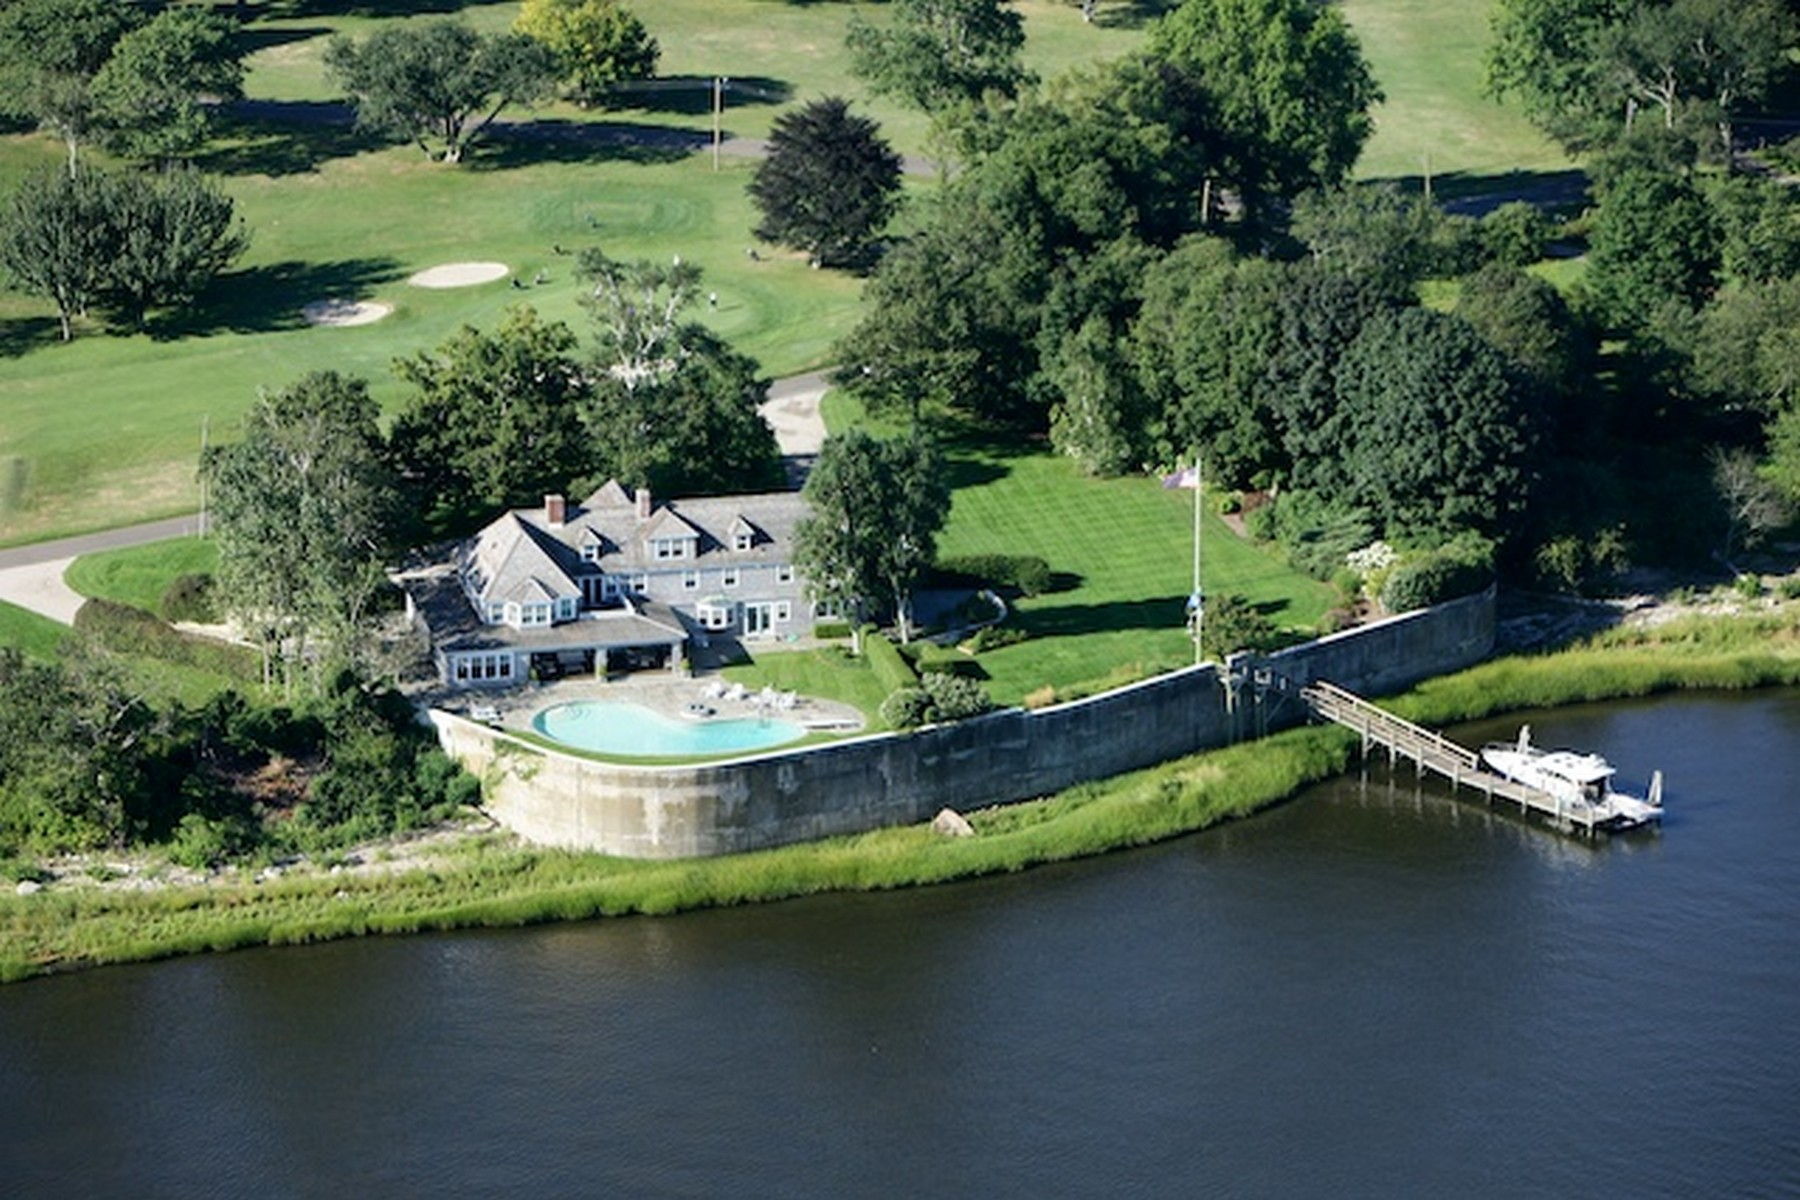 Casa Unifamiliar por un Venta en Waterfront Property with Dock 20 Nibang Avenue Old Saybrook, Connecticut, 06475 Estados Unidos